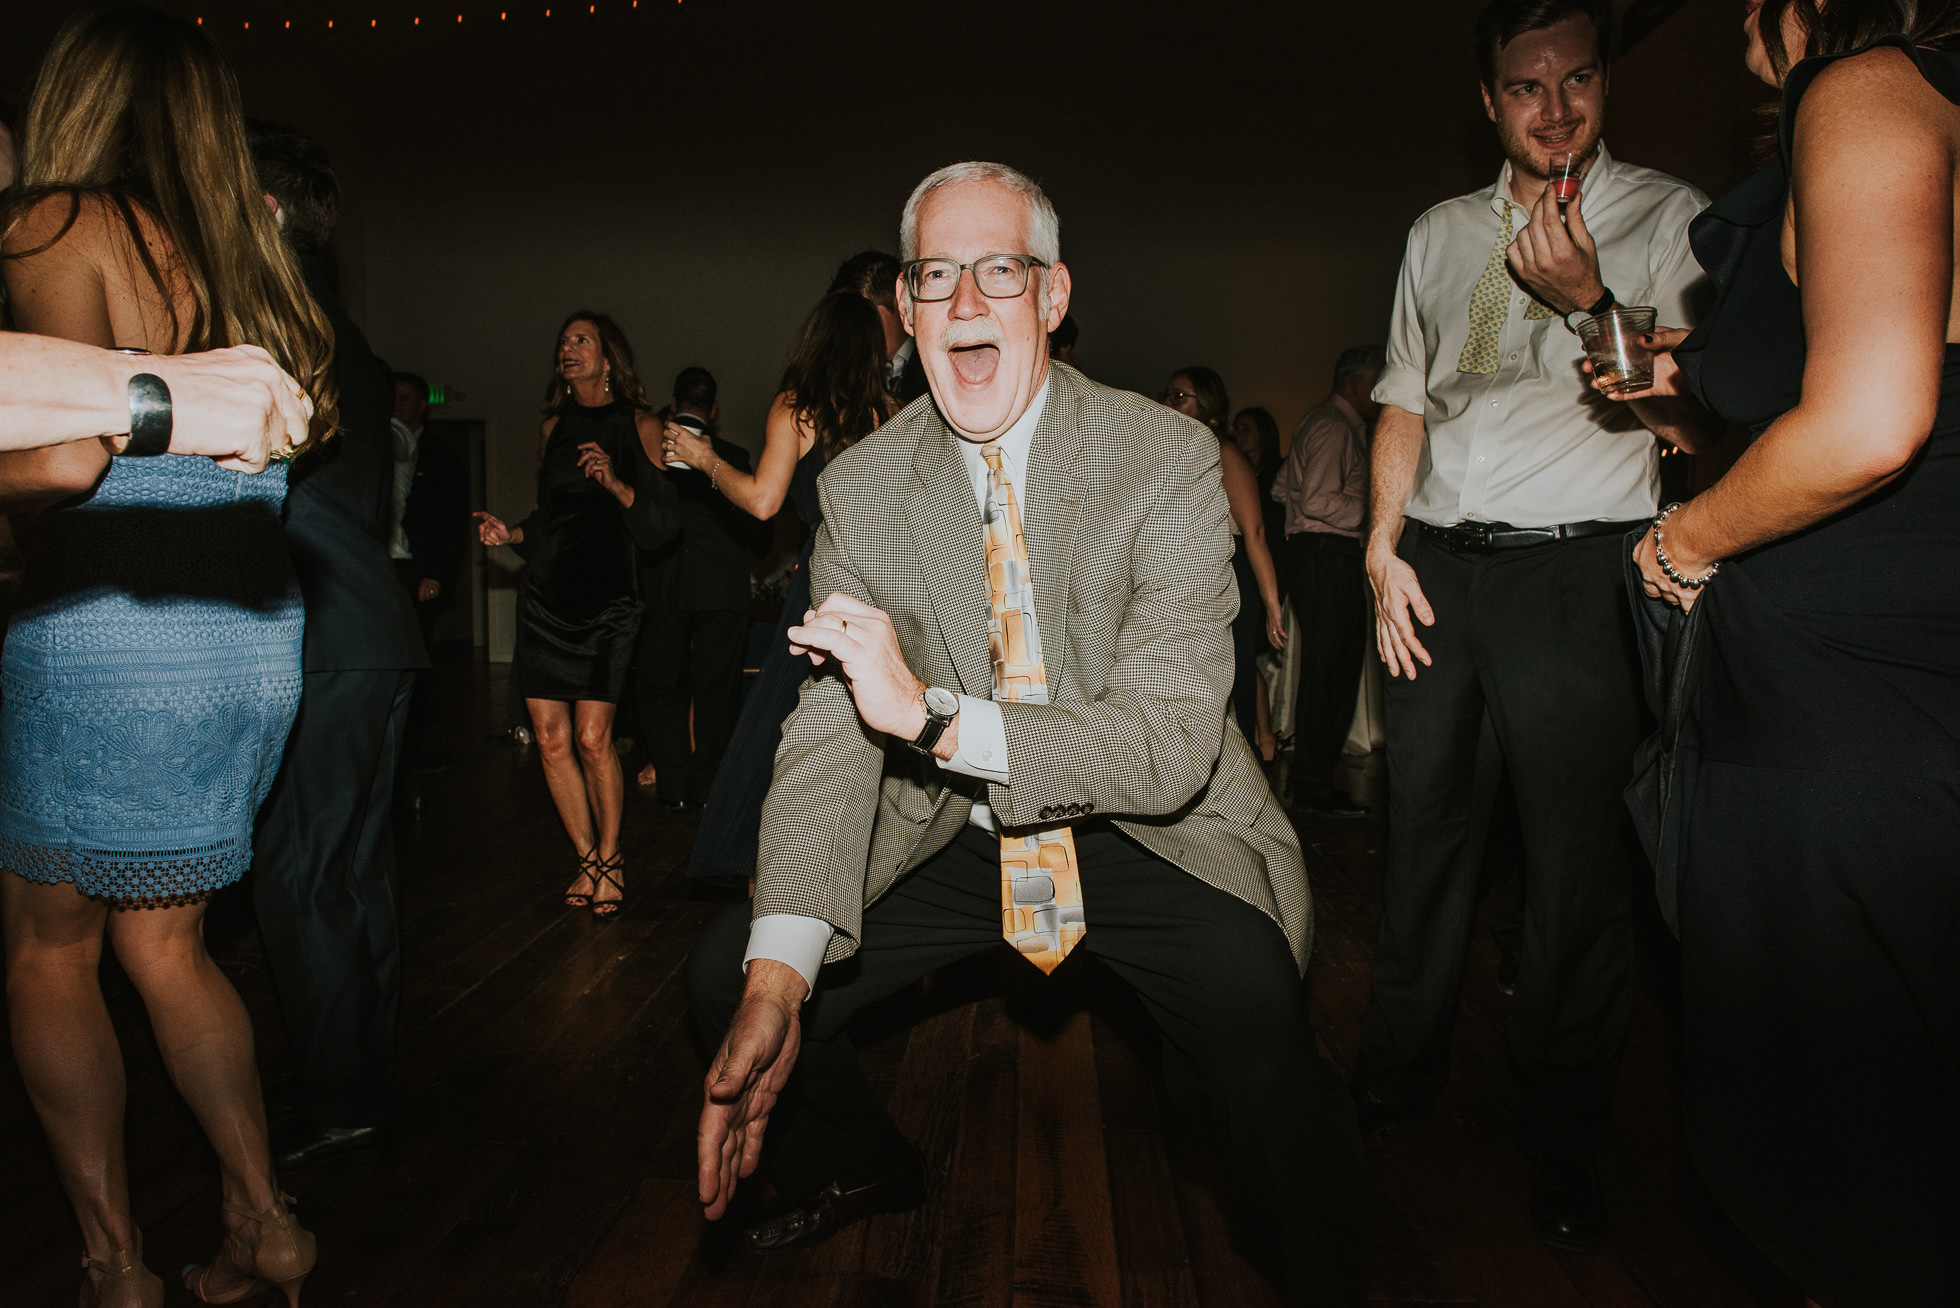 wild man dancing at wedding reception at the cordelle nashville wedding